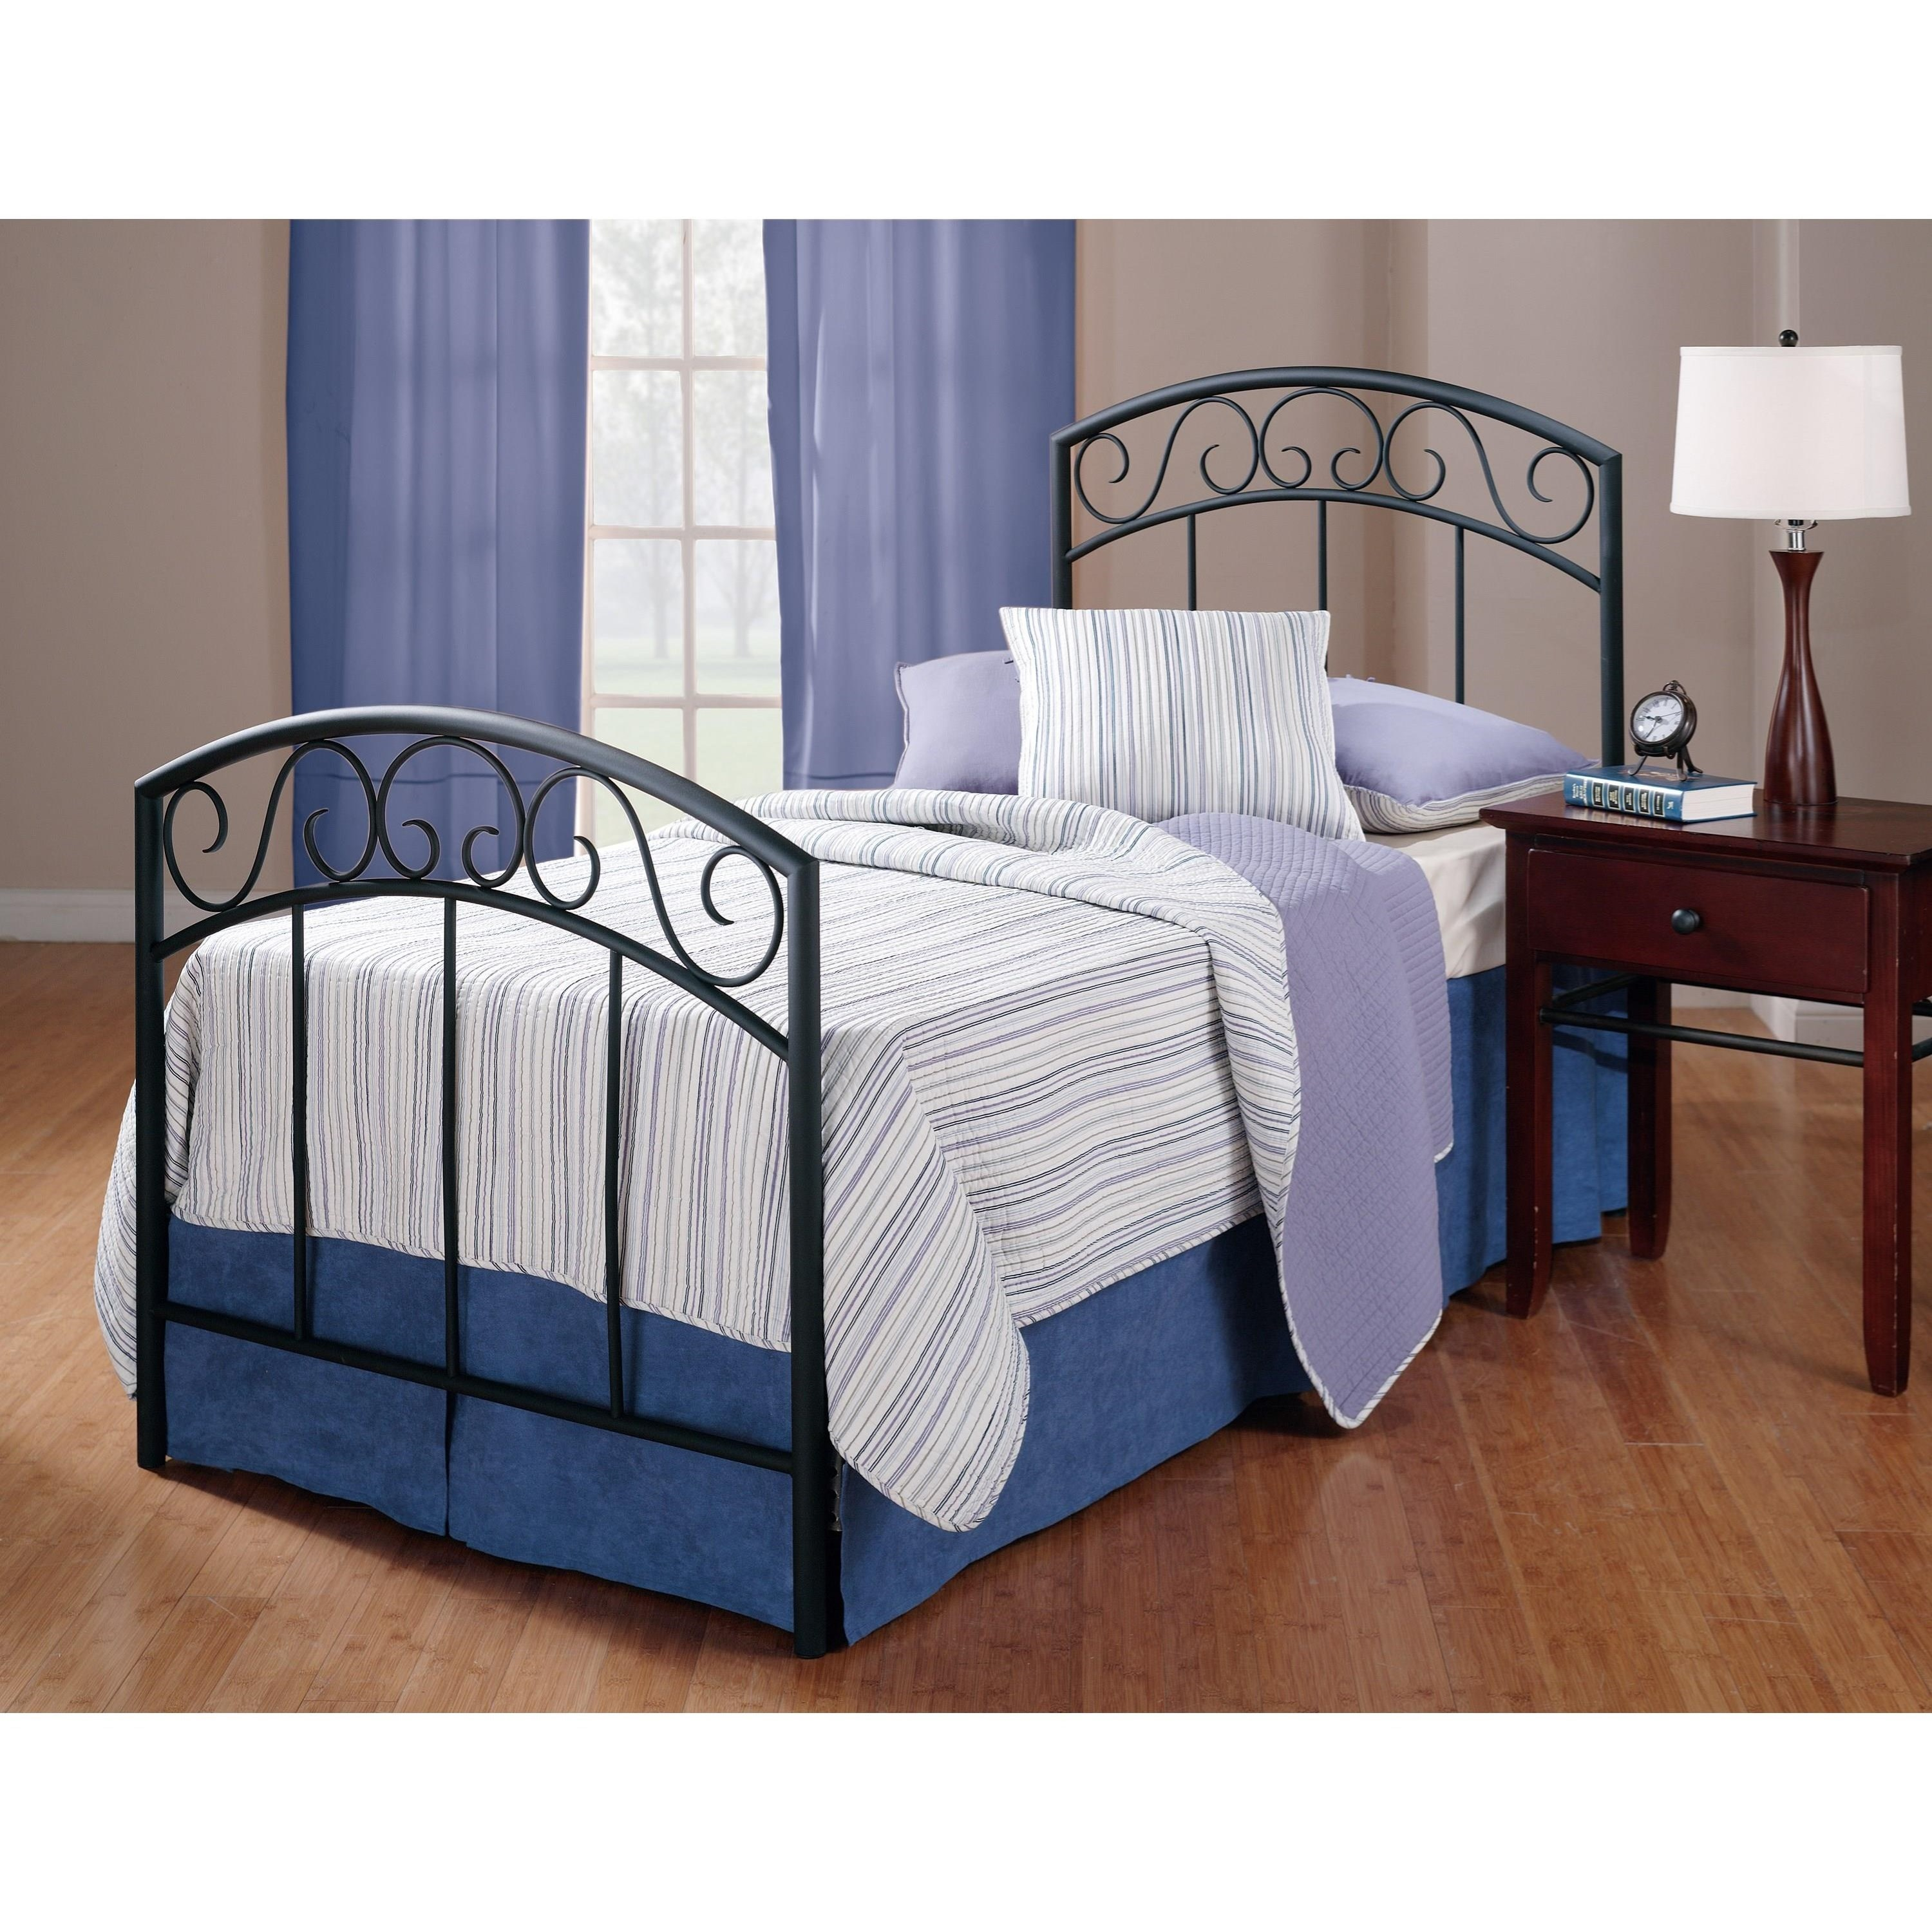 Metal Beds Twin Wendell Bed Set by Hillsdale at Westrich Furniture & Appliances